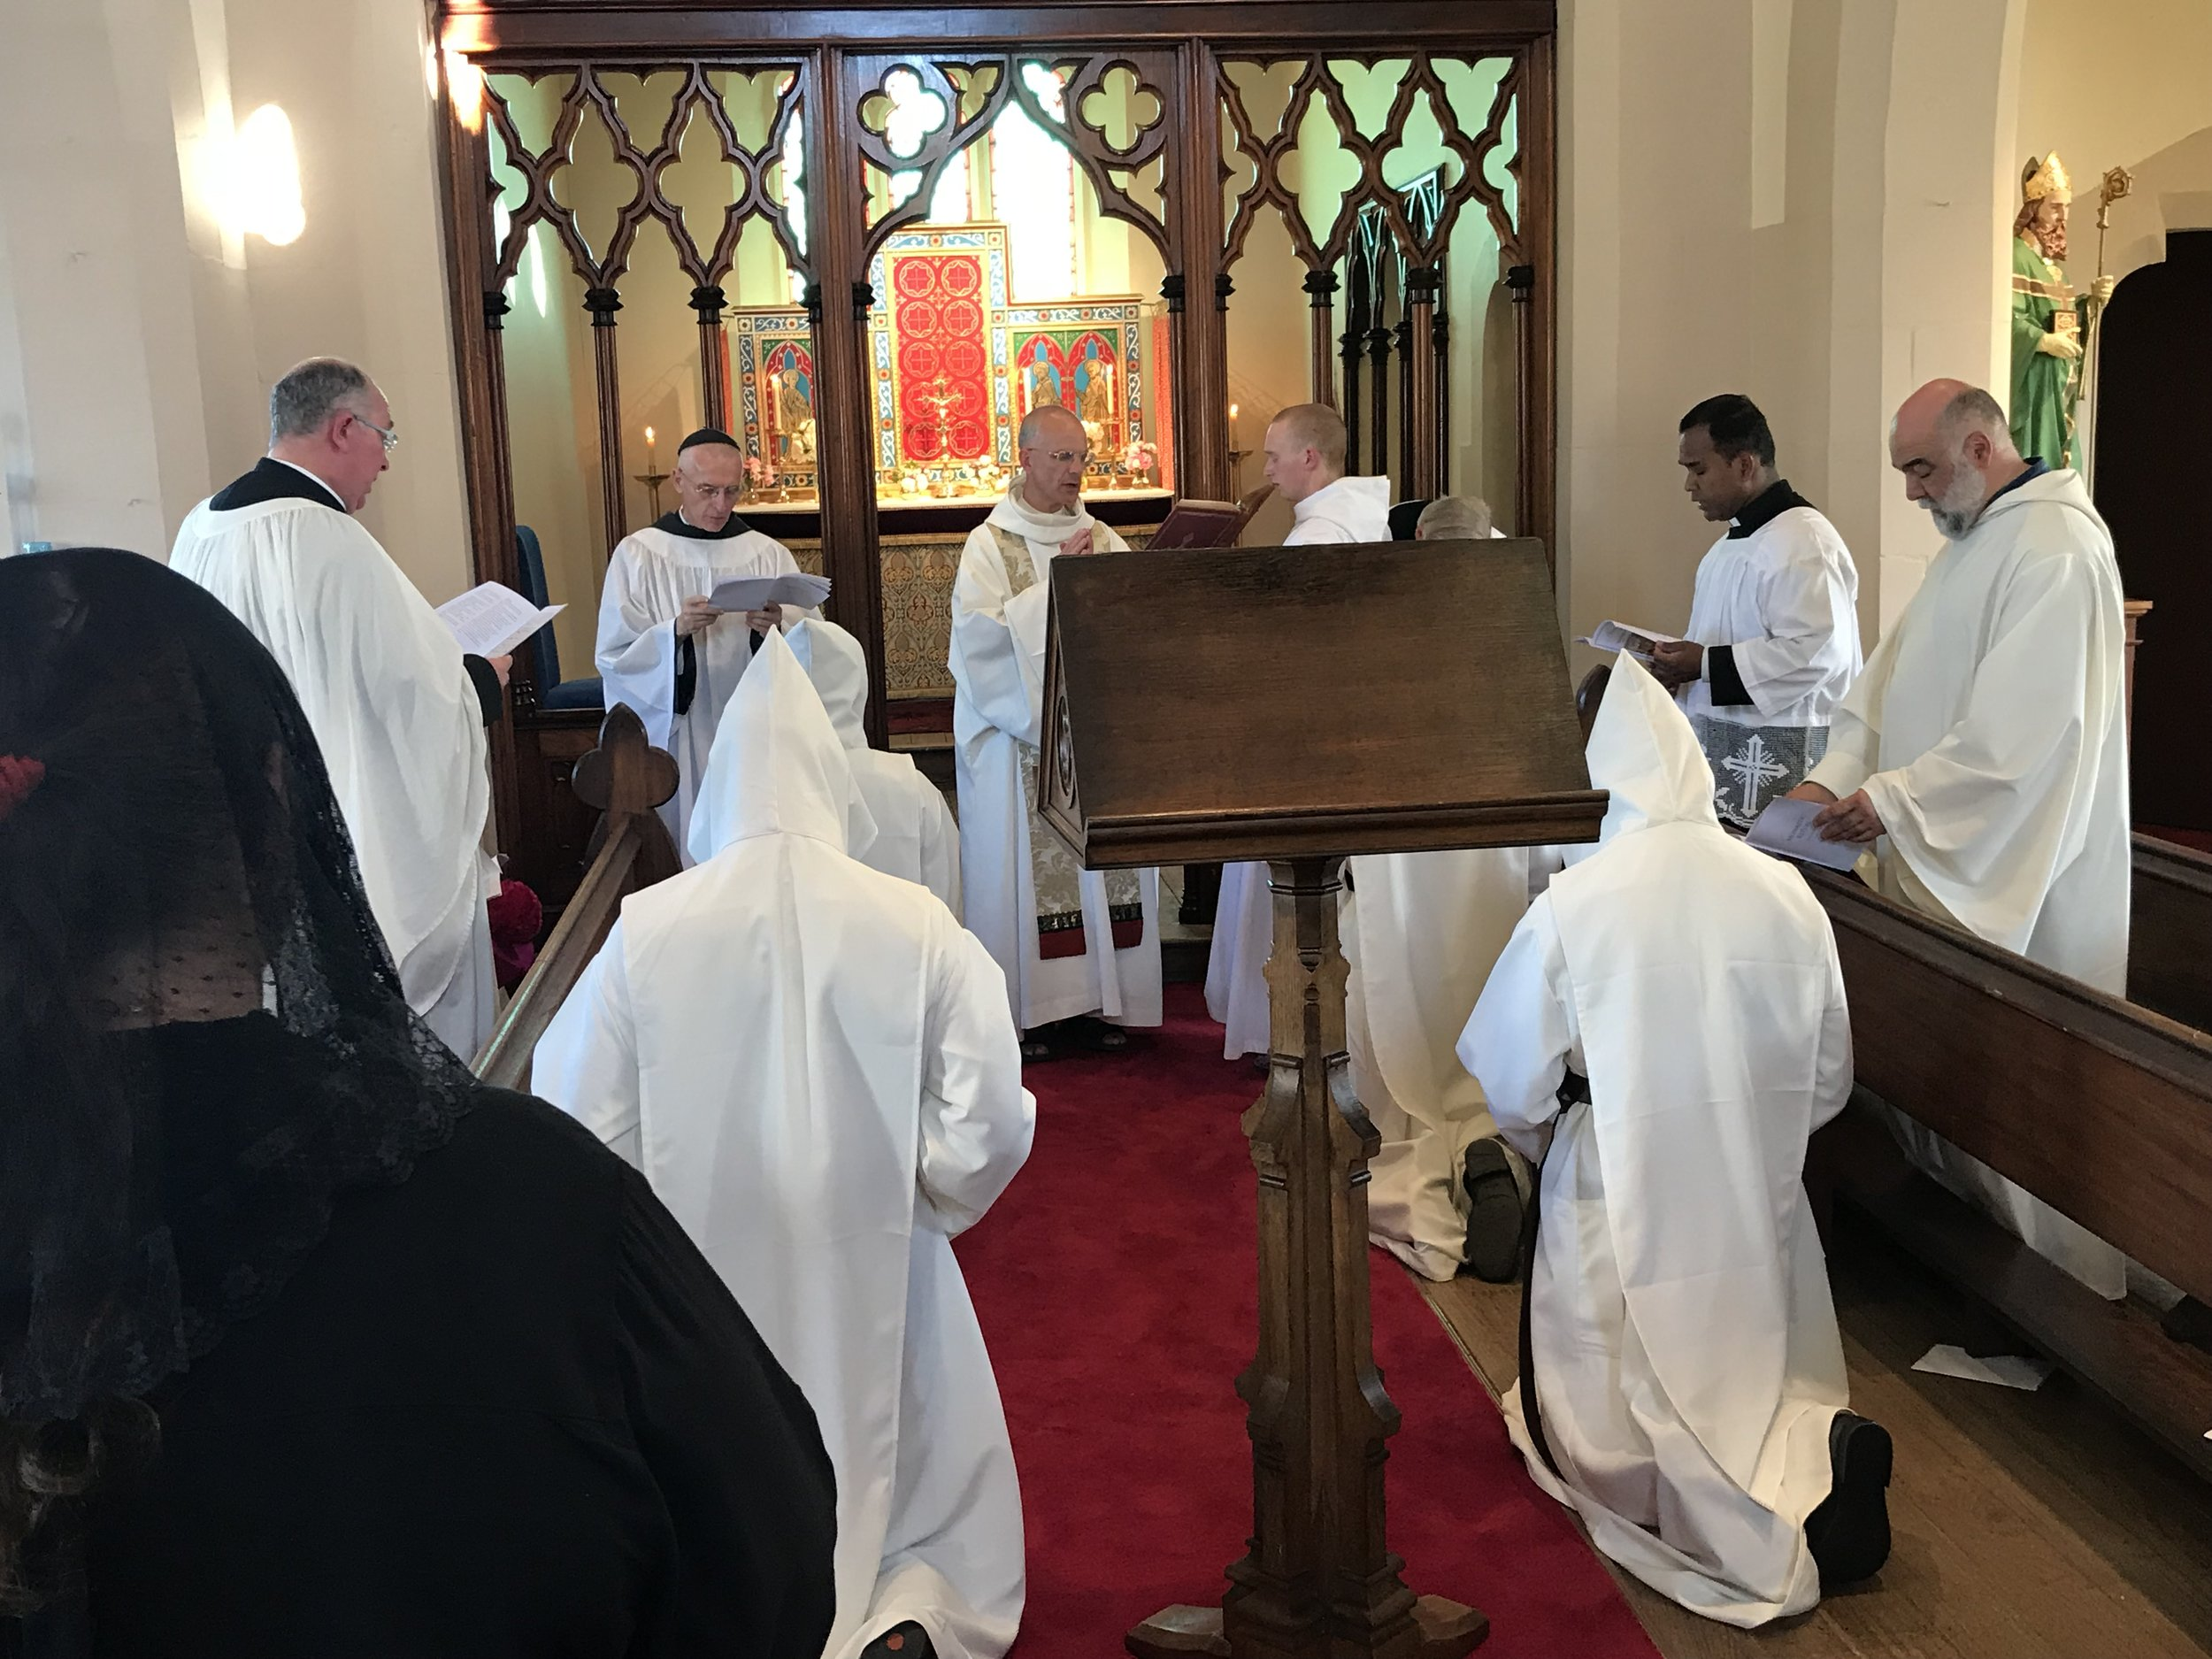 Father Prior chants an oration over the newly clothed novices.